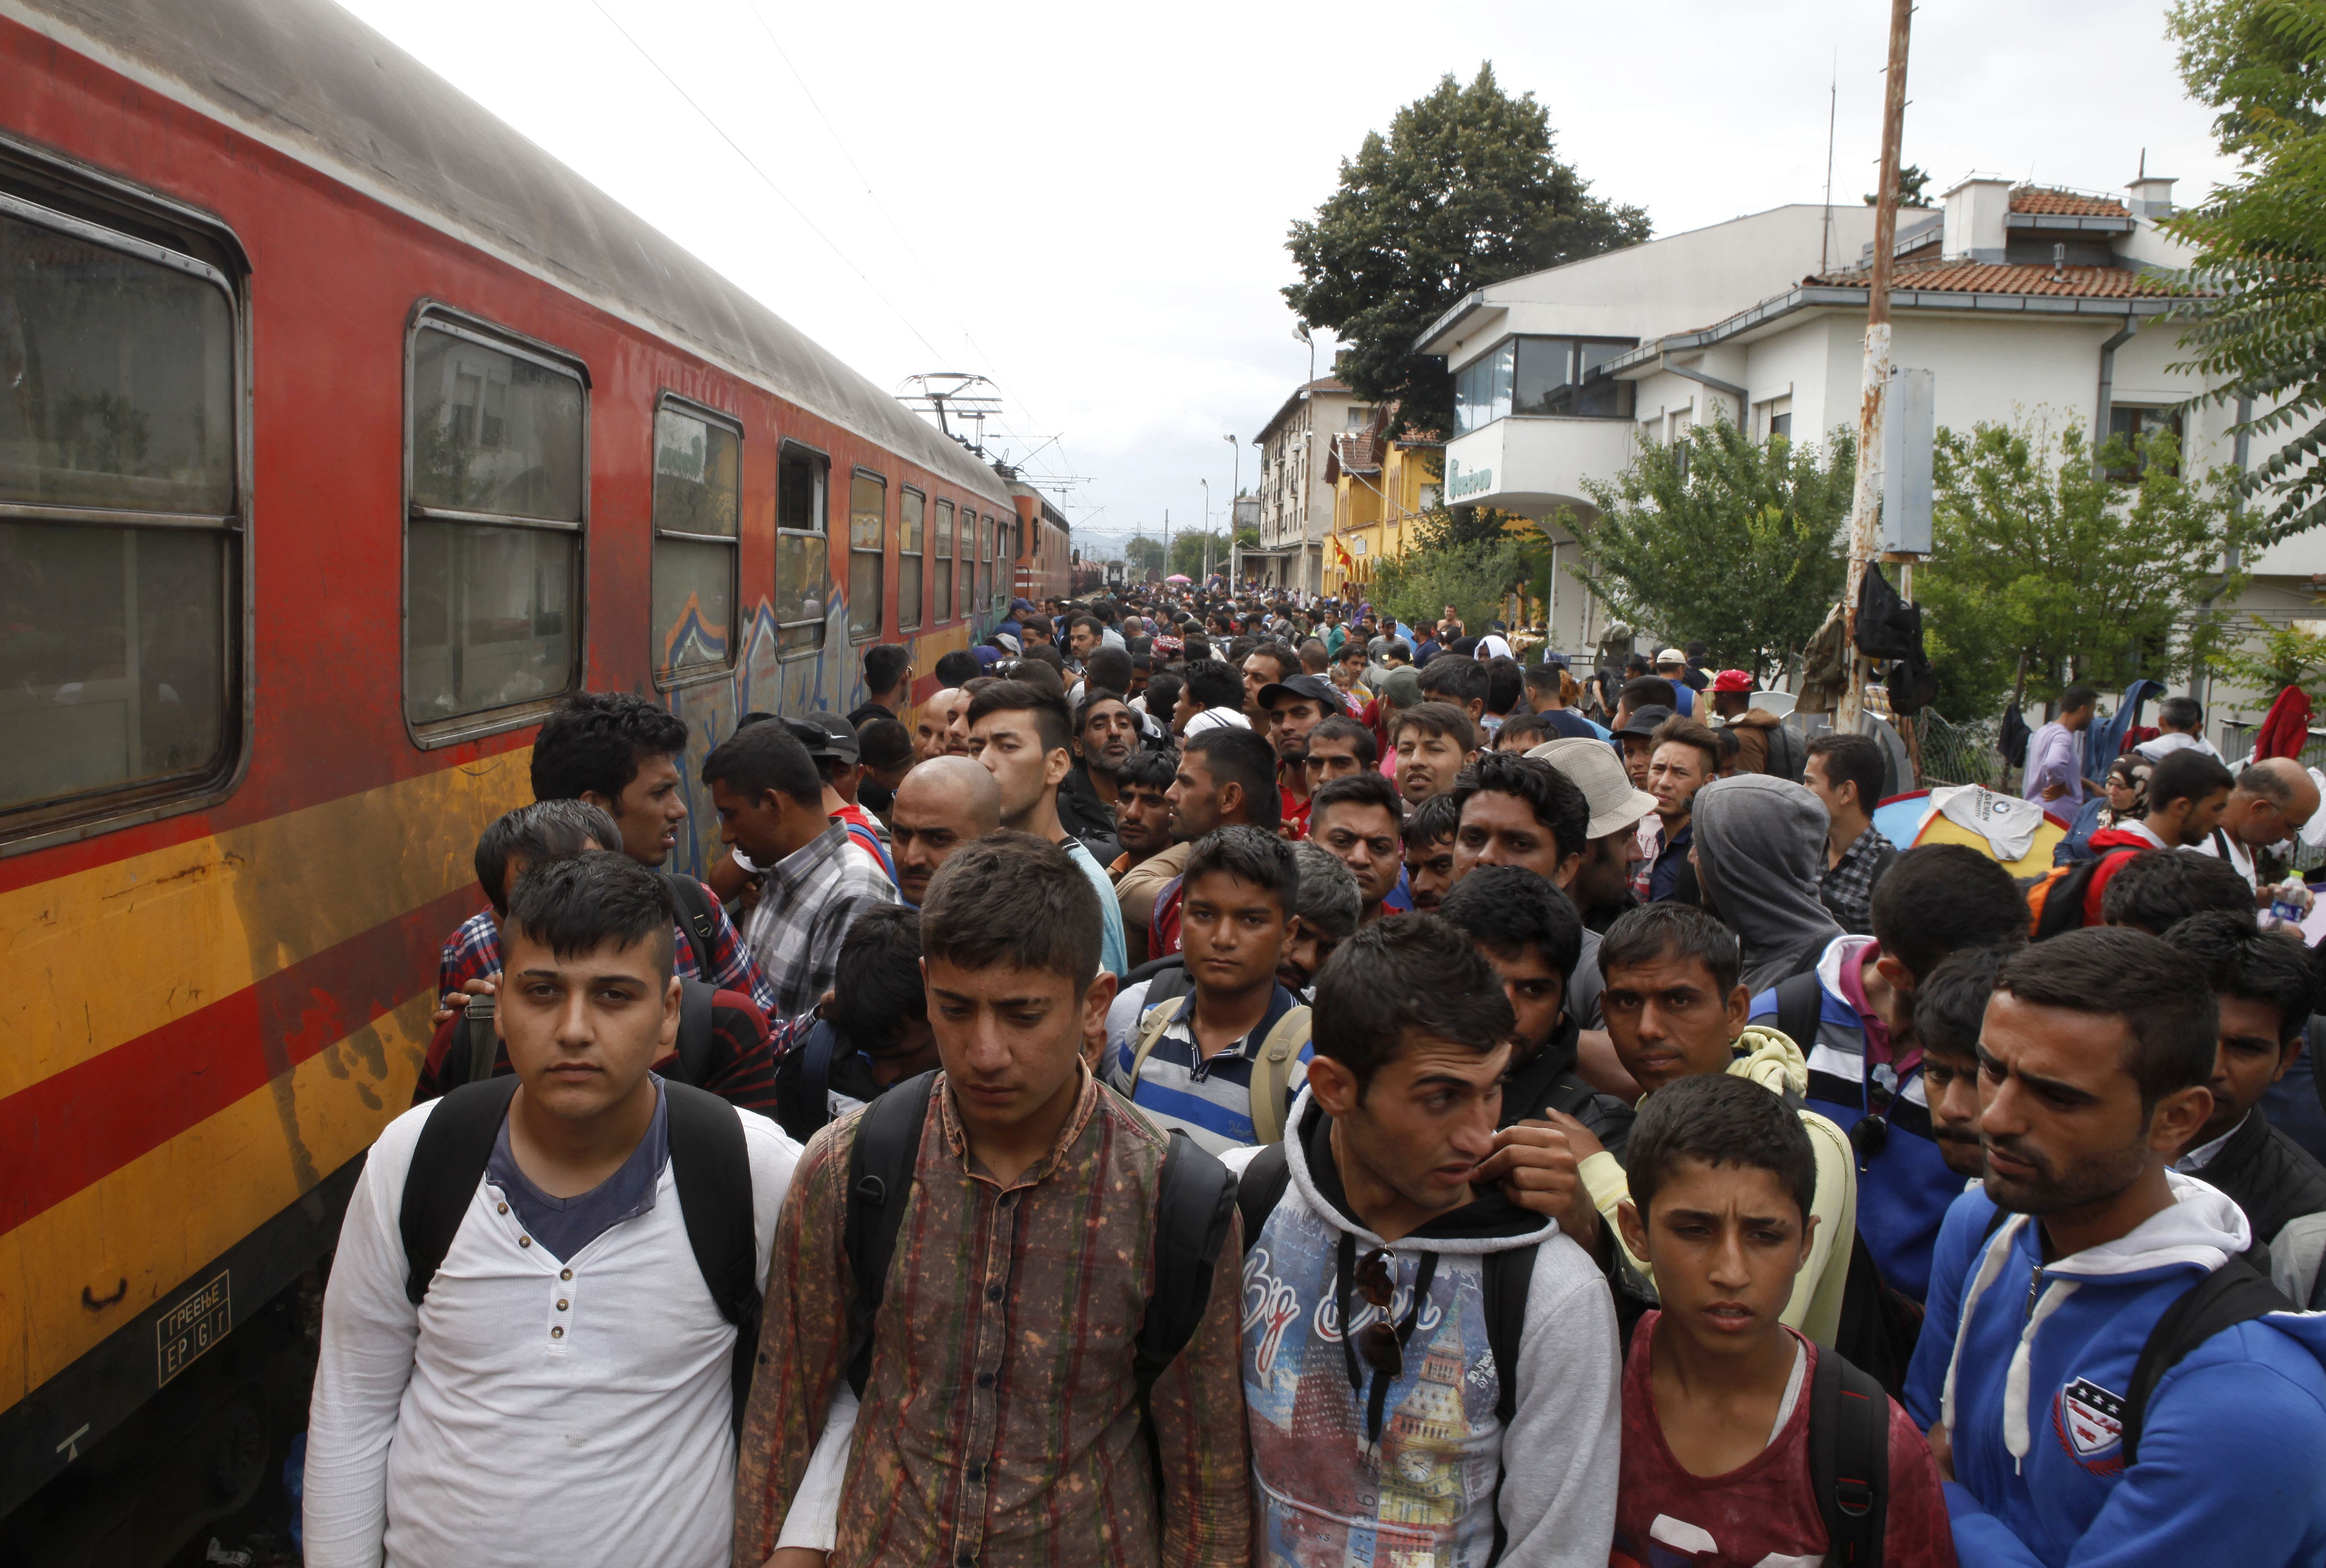 Migrants line up to board a train that will take them towards Serbia, at the railway station in the southern Macedonia's town of Gevgelija, on Saturday, Aug. 22, 2015. (AP)